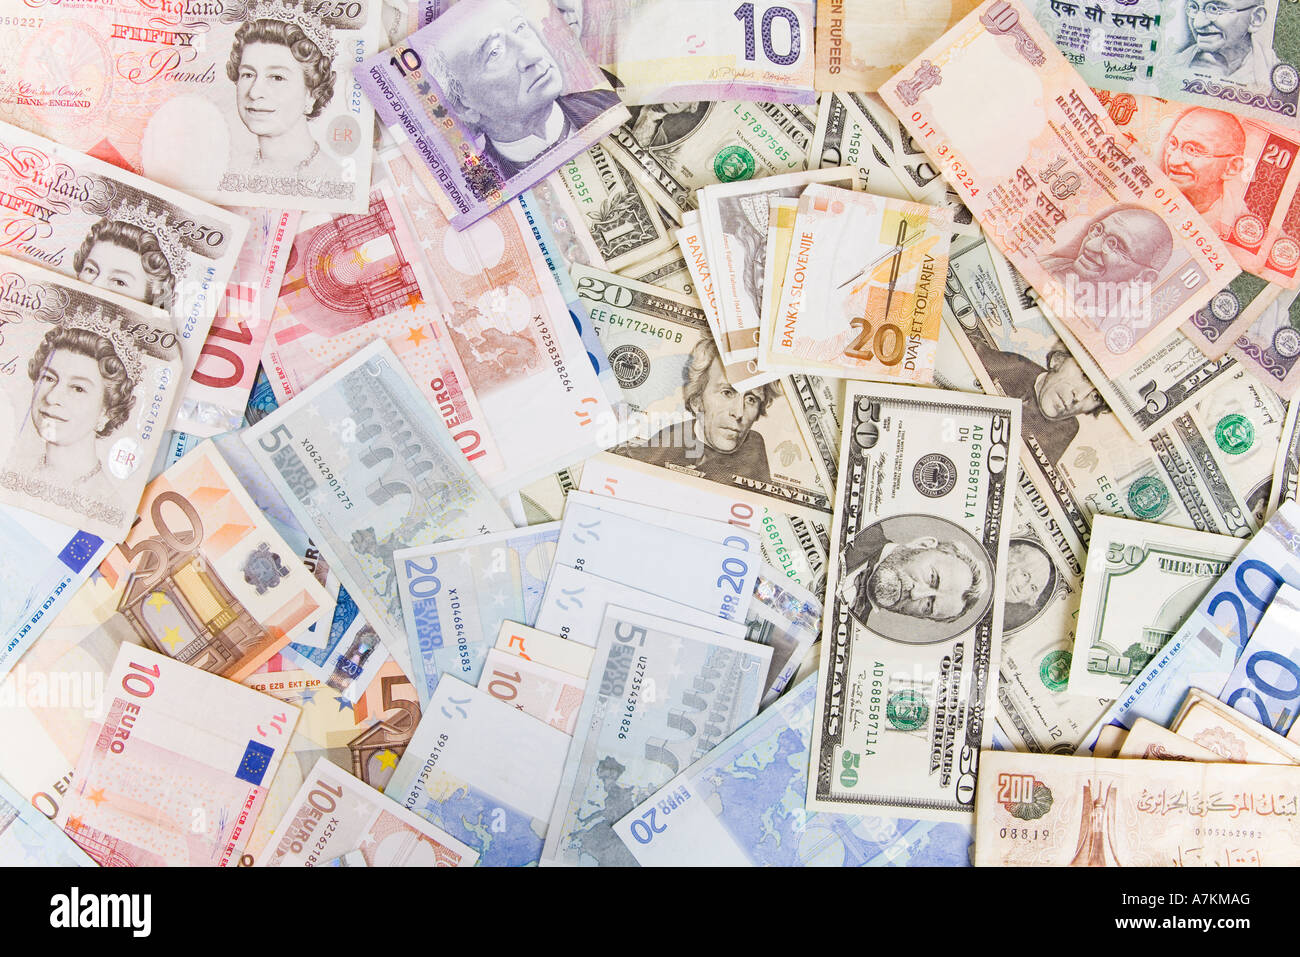 Various currencies, including US dollars, euros, pounds sterling